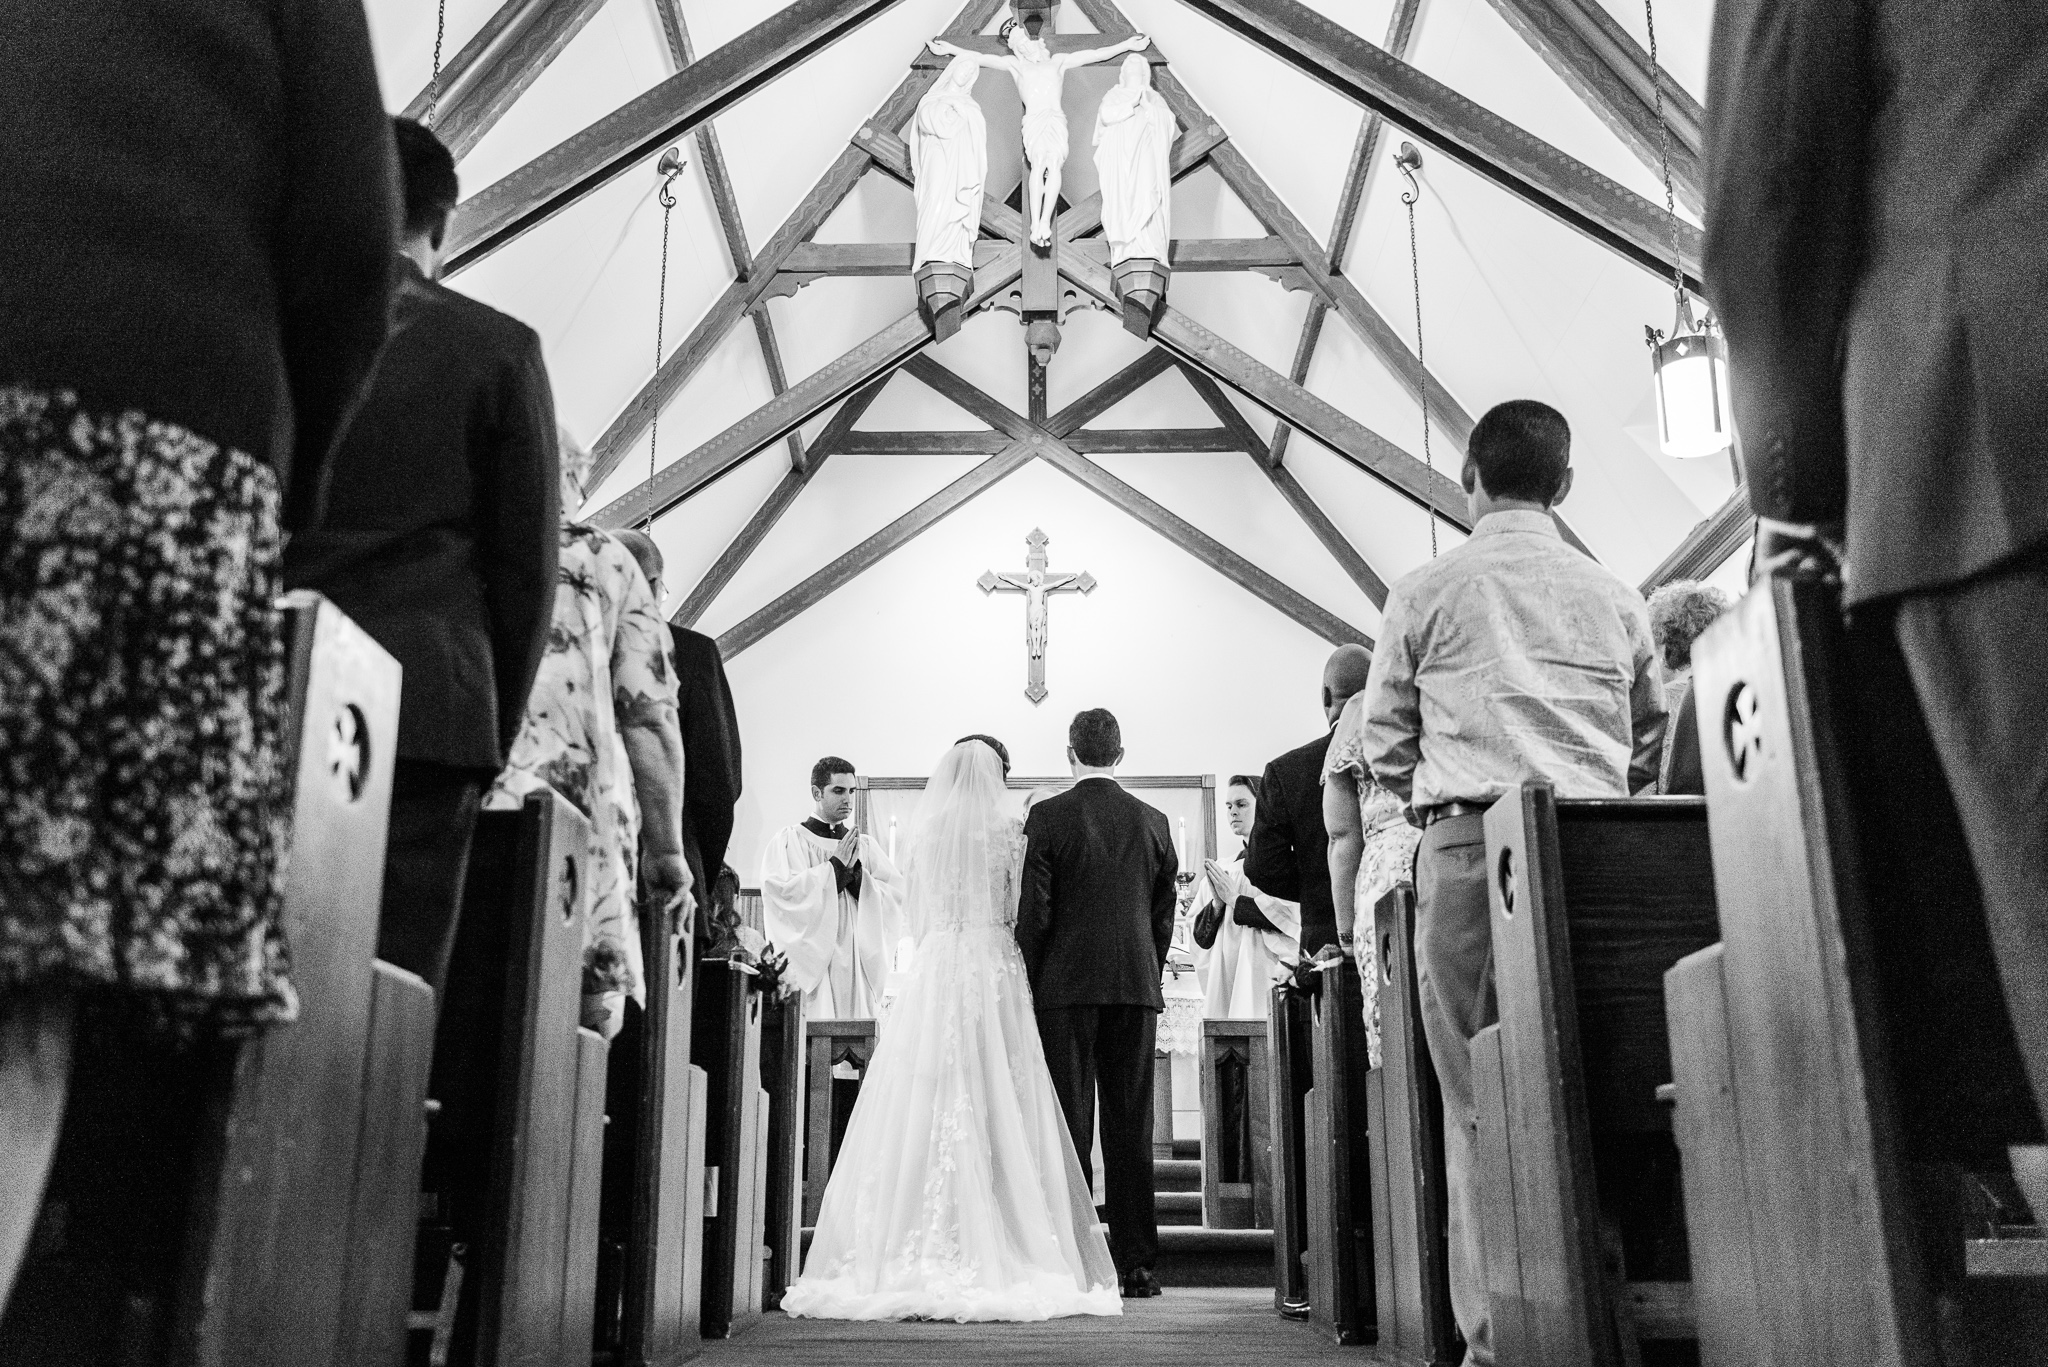 A bride and groom stand before the altar and crucifix at the front of the church during a Catholic wedding ceremony at the Chapel of Immaculate Conception in Leesburg, Northern Virginia